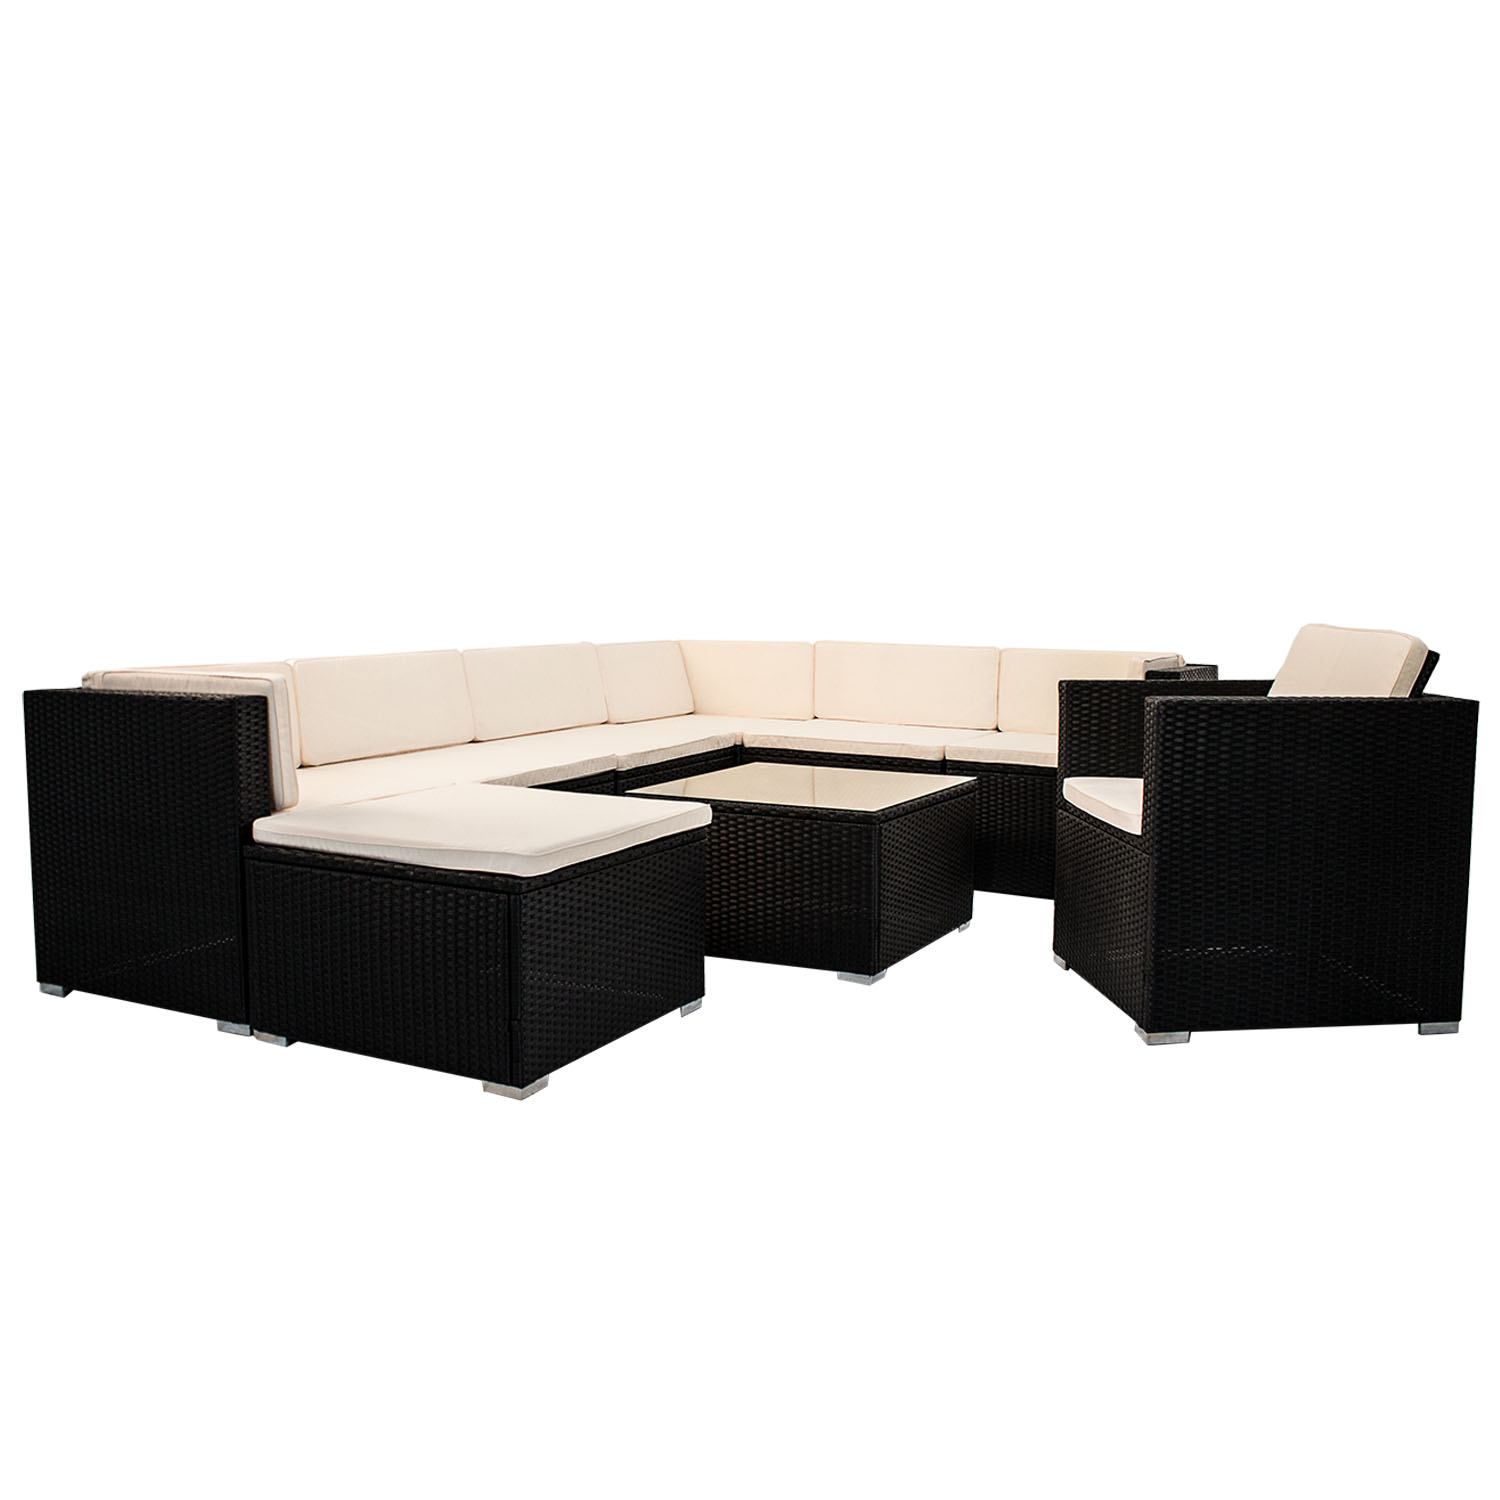 polyrattan gartenm bel lounge rattan gartenset poly sitzgruppe rattanm bel neu. Black Bedroom Furniture Sets. Home Design Ideas